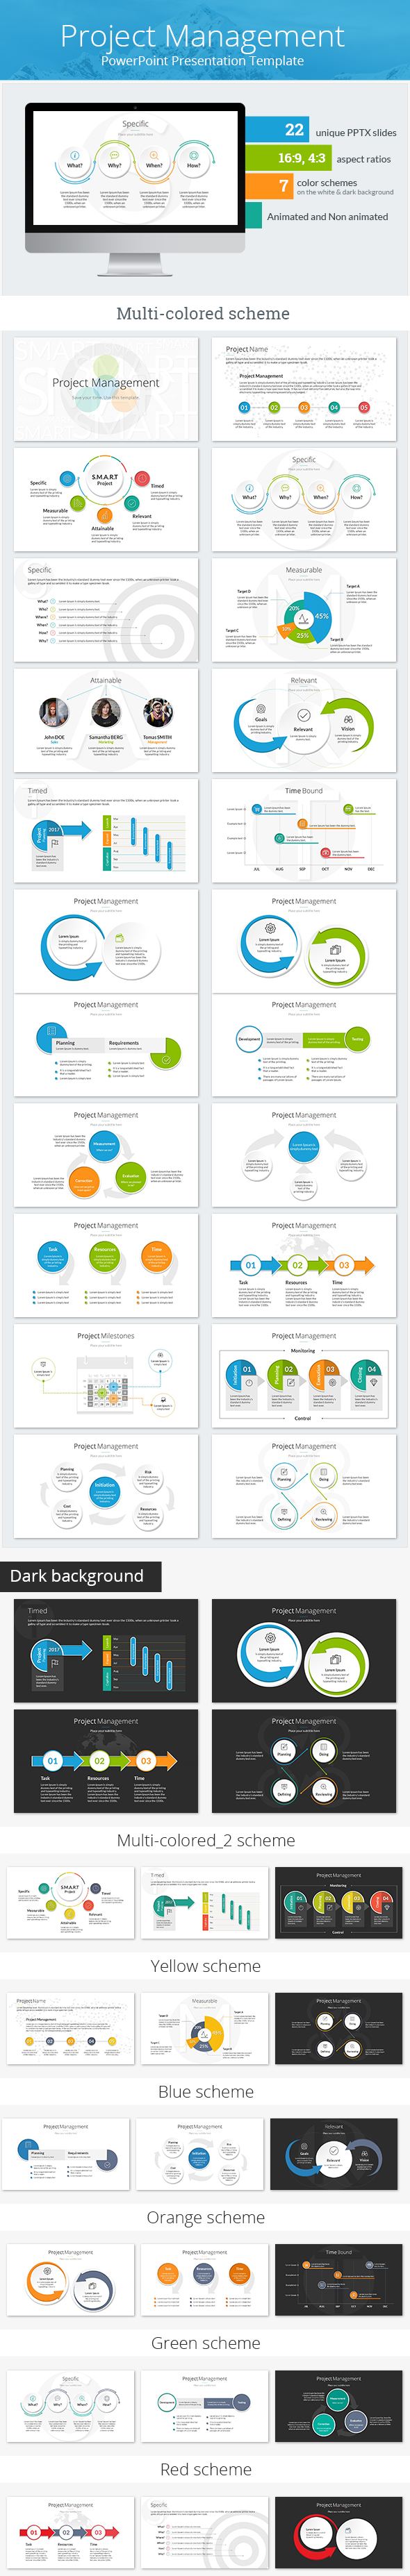 Human Resource Plan (PowerPoint Templates)